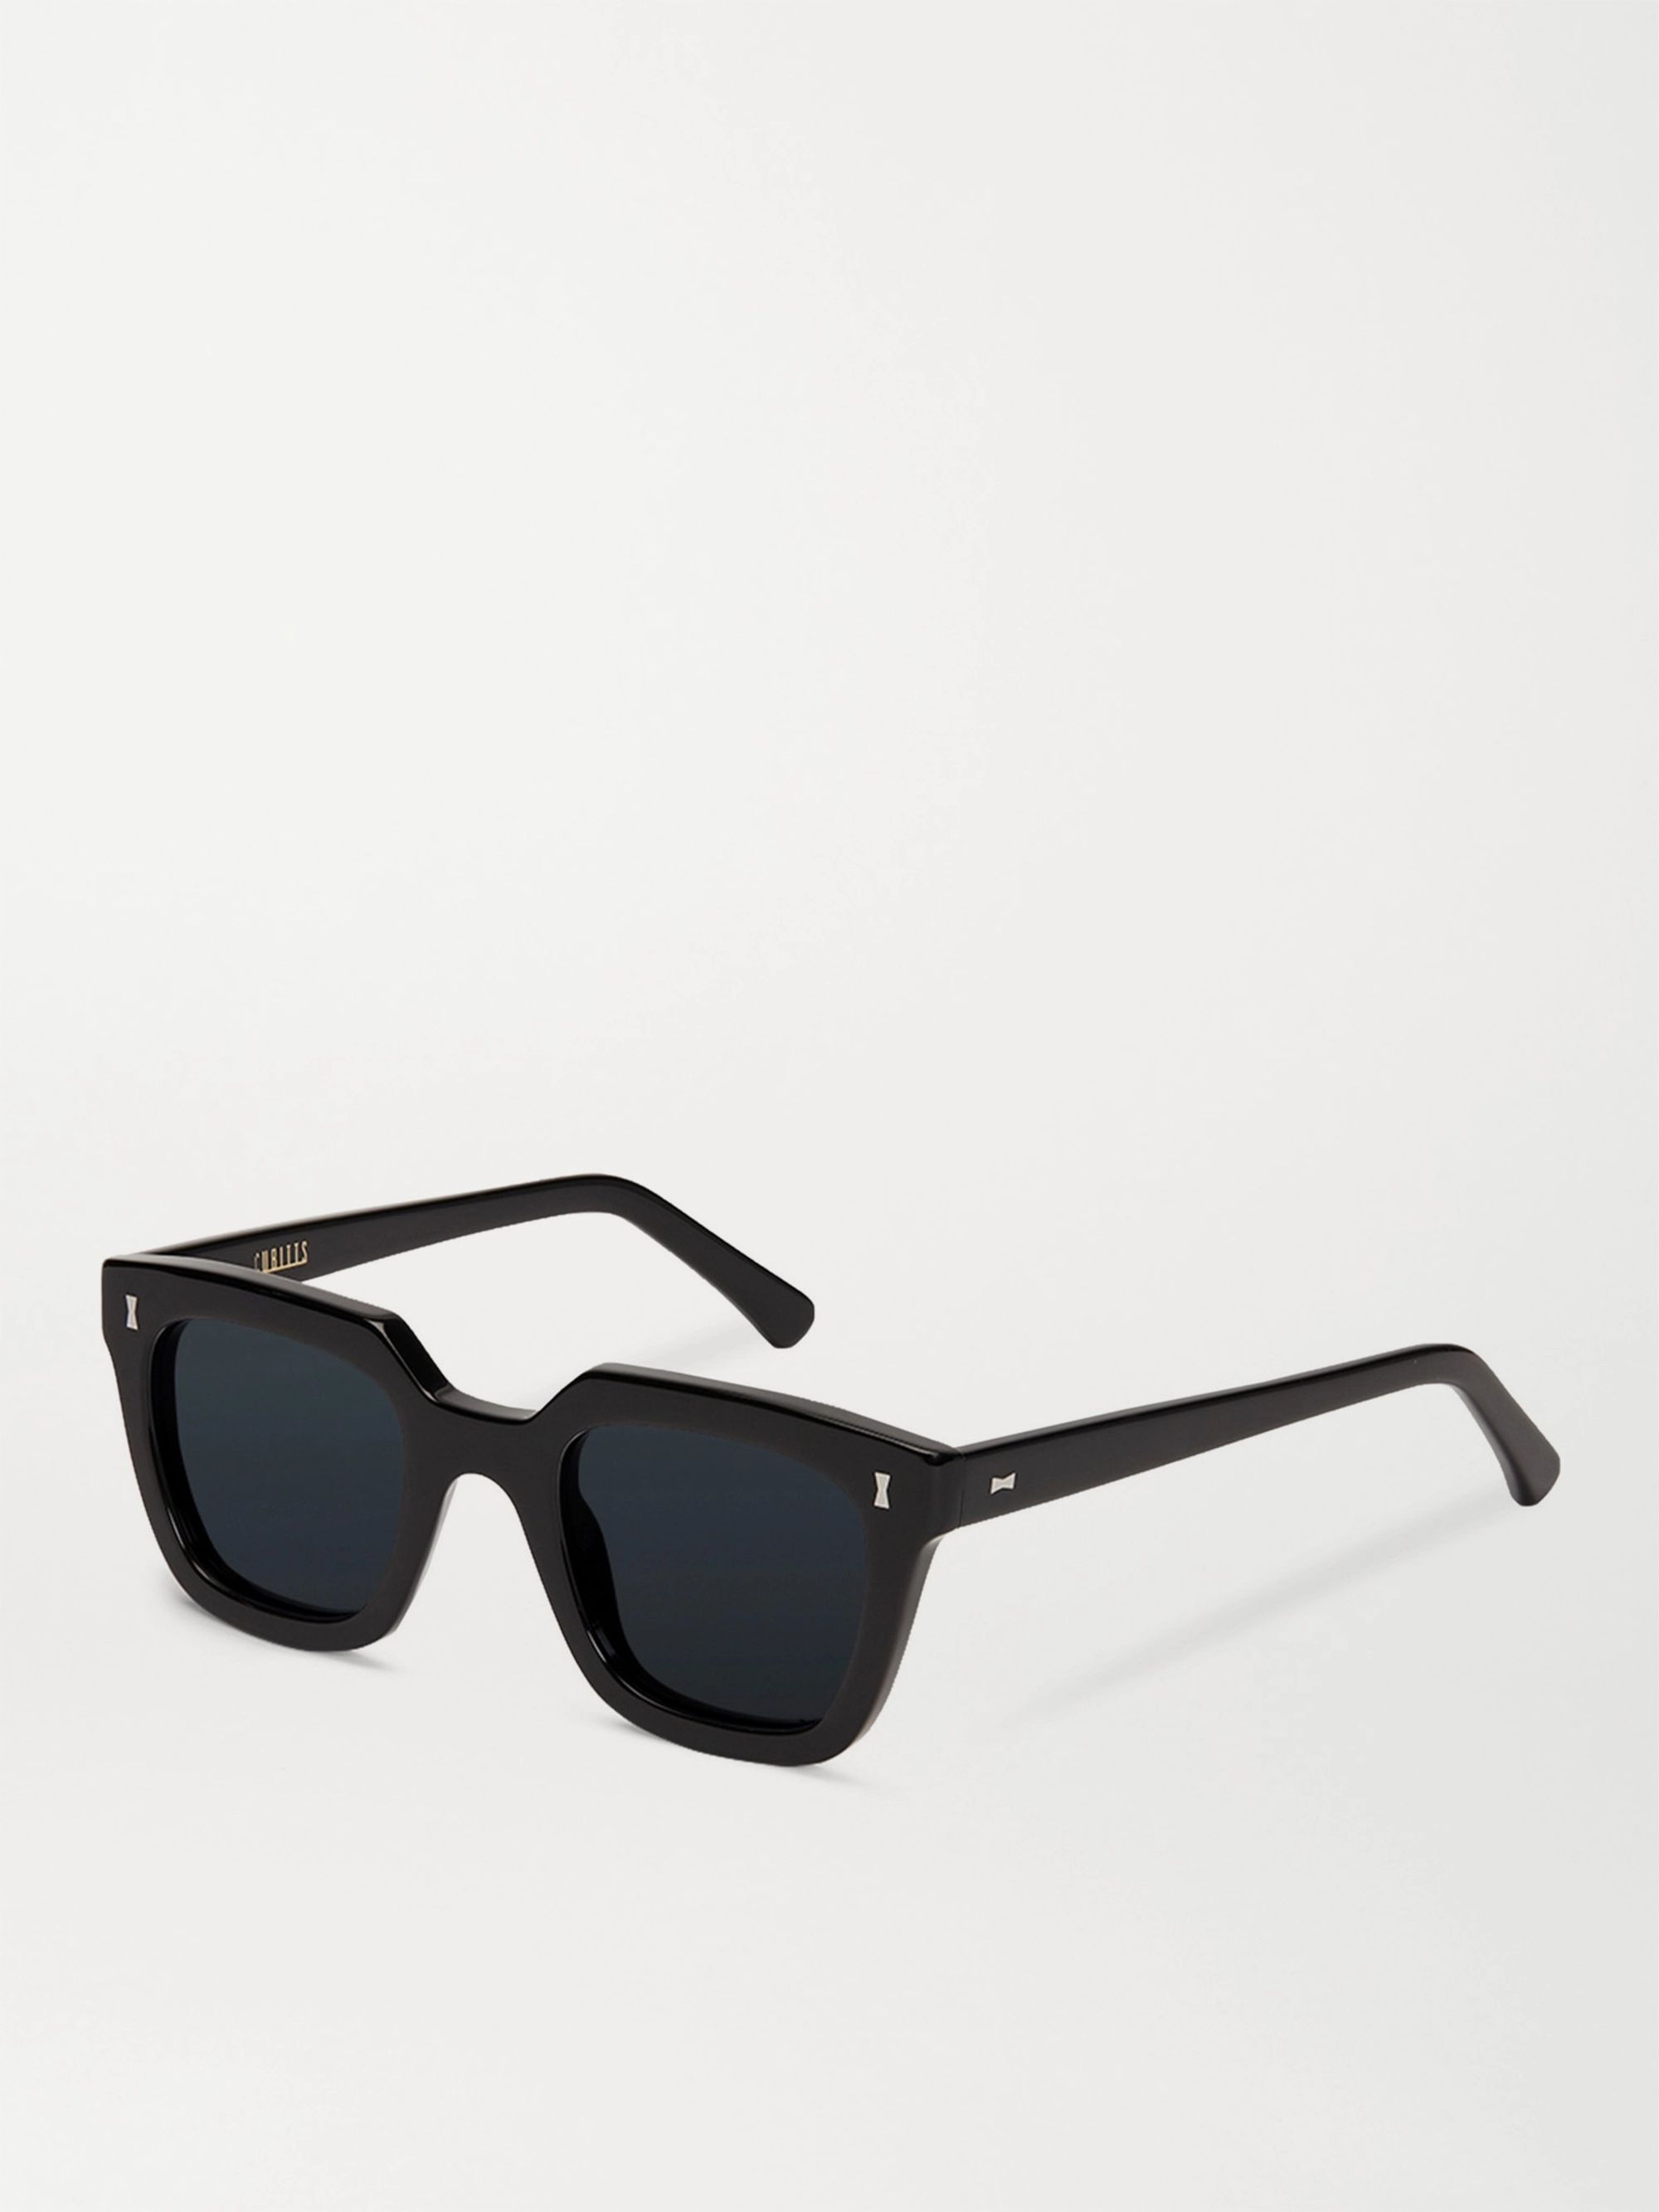 CUBITTS Balfour Square-Frame Acetate Sunglasses